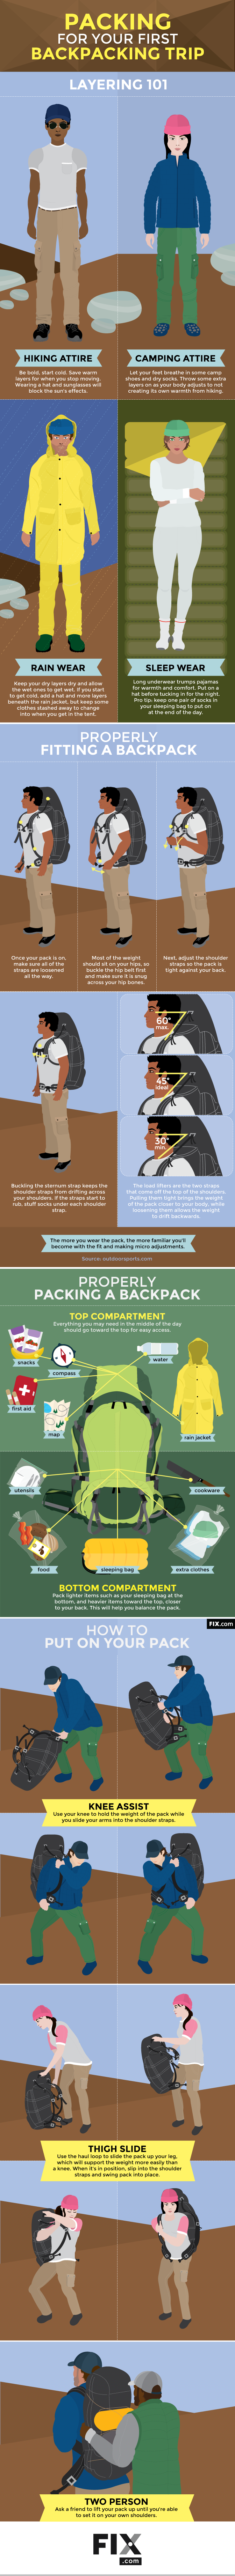 How to Pack for Your First Backpacking Trip